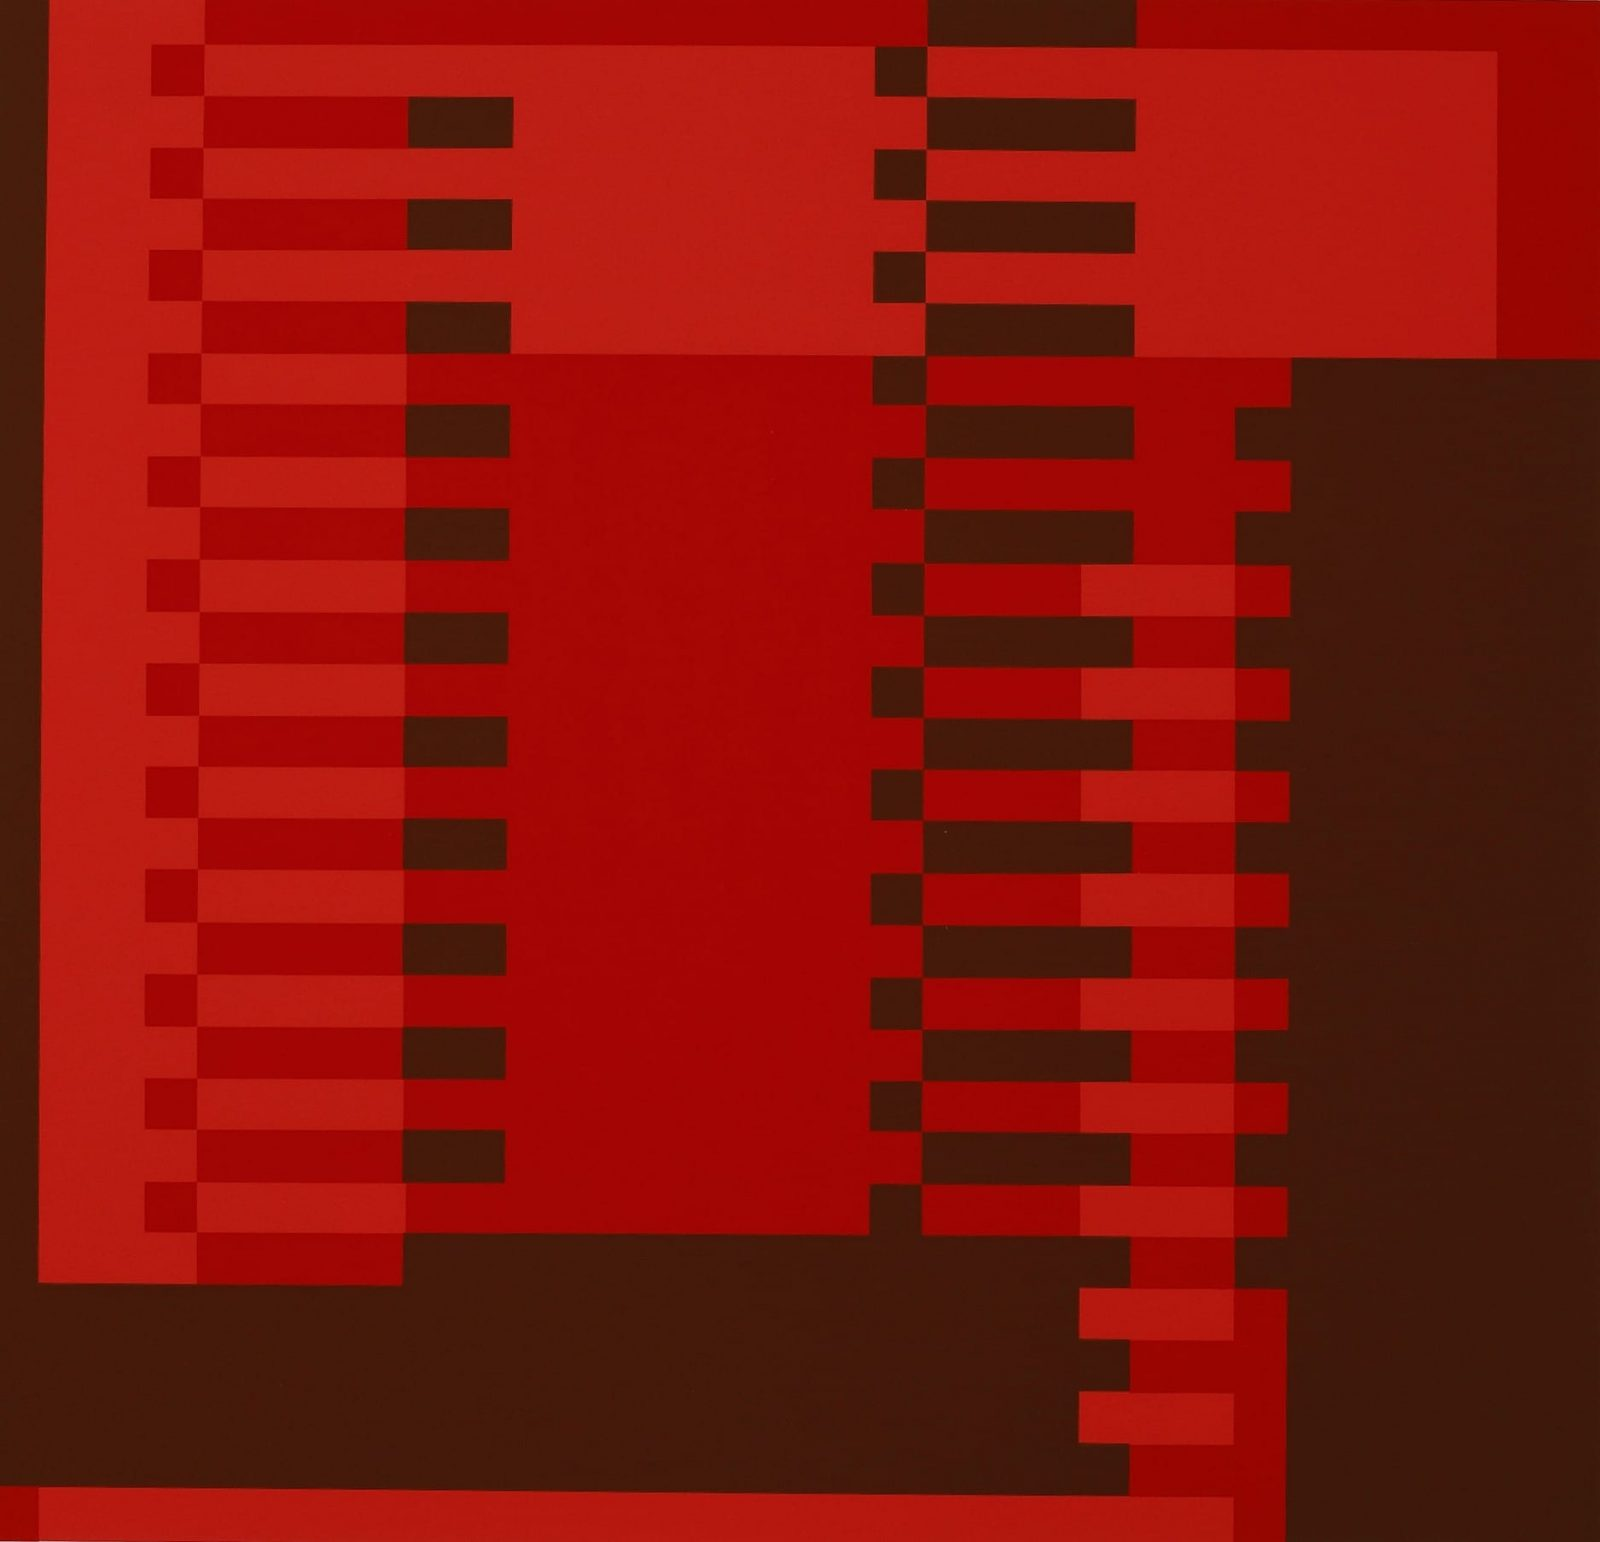 2. This print displays color blocking in shades of red, deep red and oxblood. The deep oxblood color is used along both the right and left edges; at left a narrow strip runs vertically and a strip about six times wider borders the right edge. Large blocks of the lighter reds overlap filling in the print. Two columns of horizontal rectangles and squares run in a track like pattern from top to bottom. Alternating shades of red create further geometric patterns.